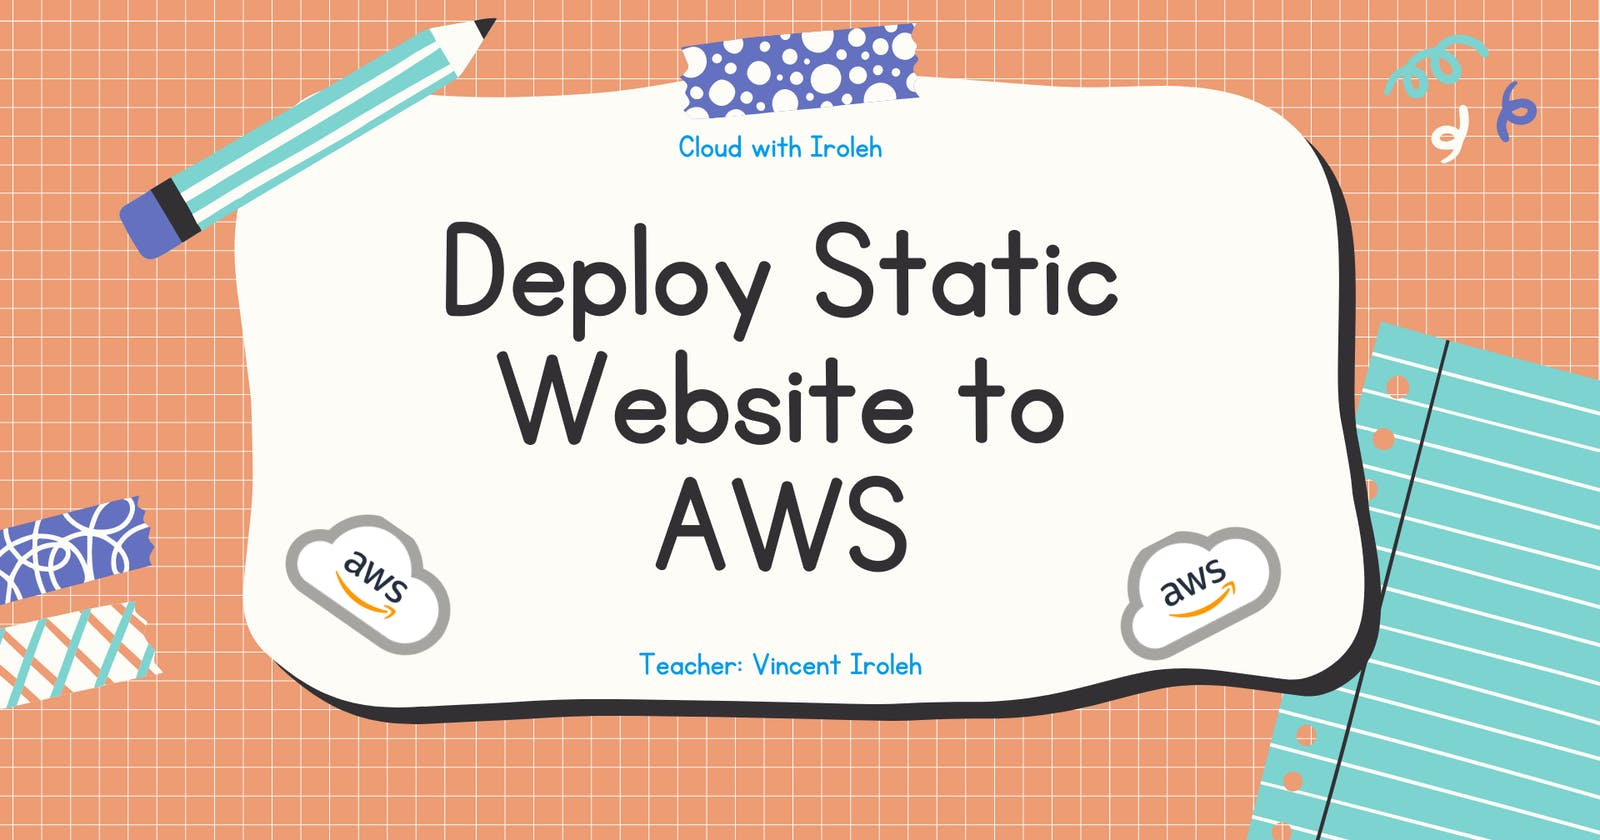 Deploy Static Website to AWS